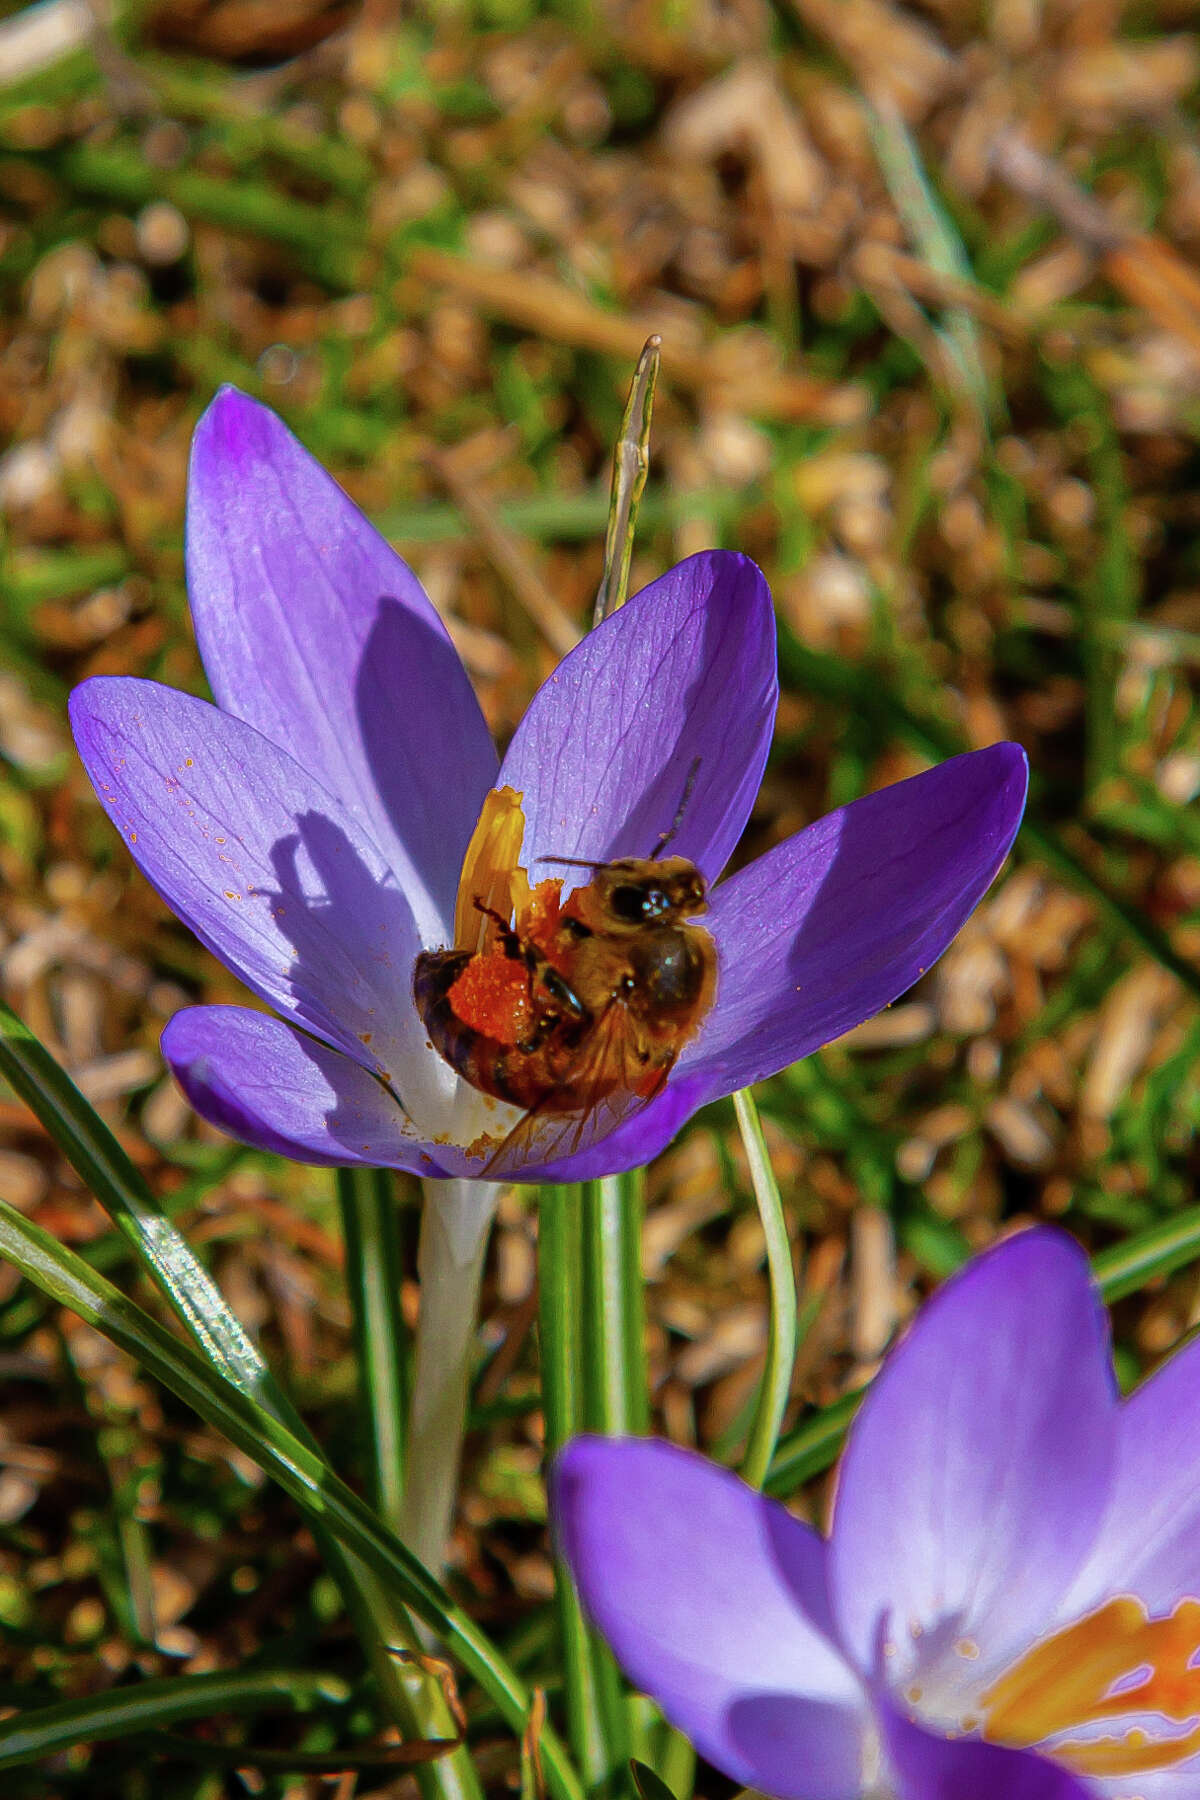 The recent warm weather has Crocus plants blooming over our lawn here in Loudonville. I was able to photograph one such plant with a bee. This bee has been collecting pollen from all the blooms. Kenneth Schwartz.